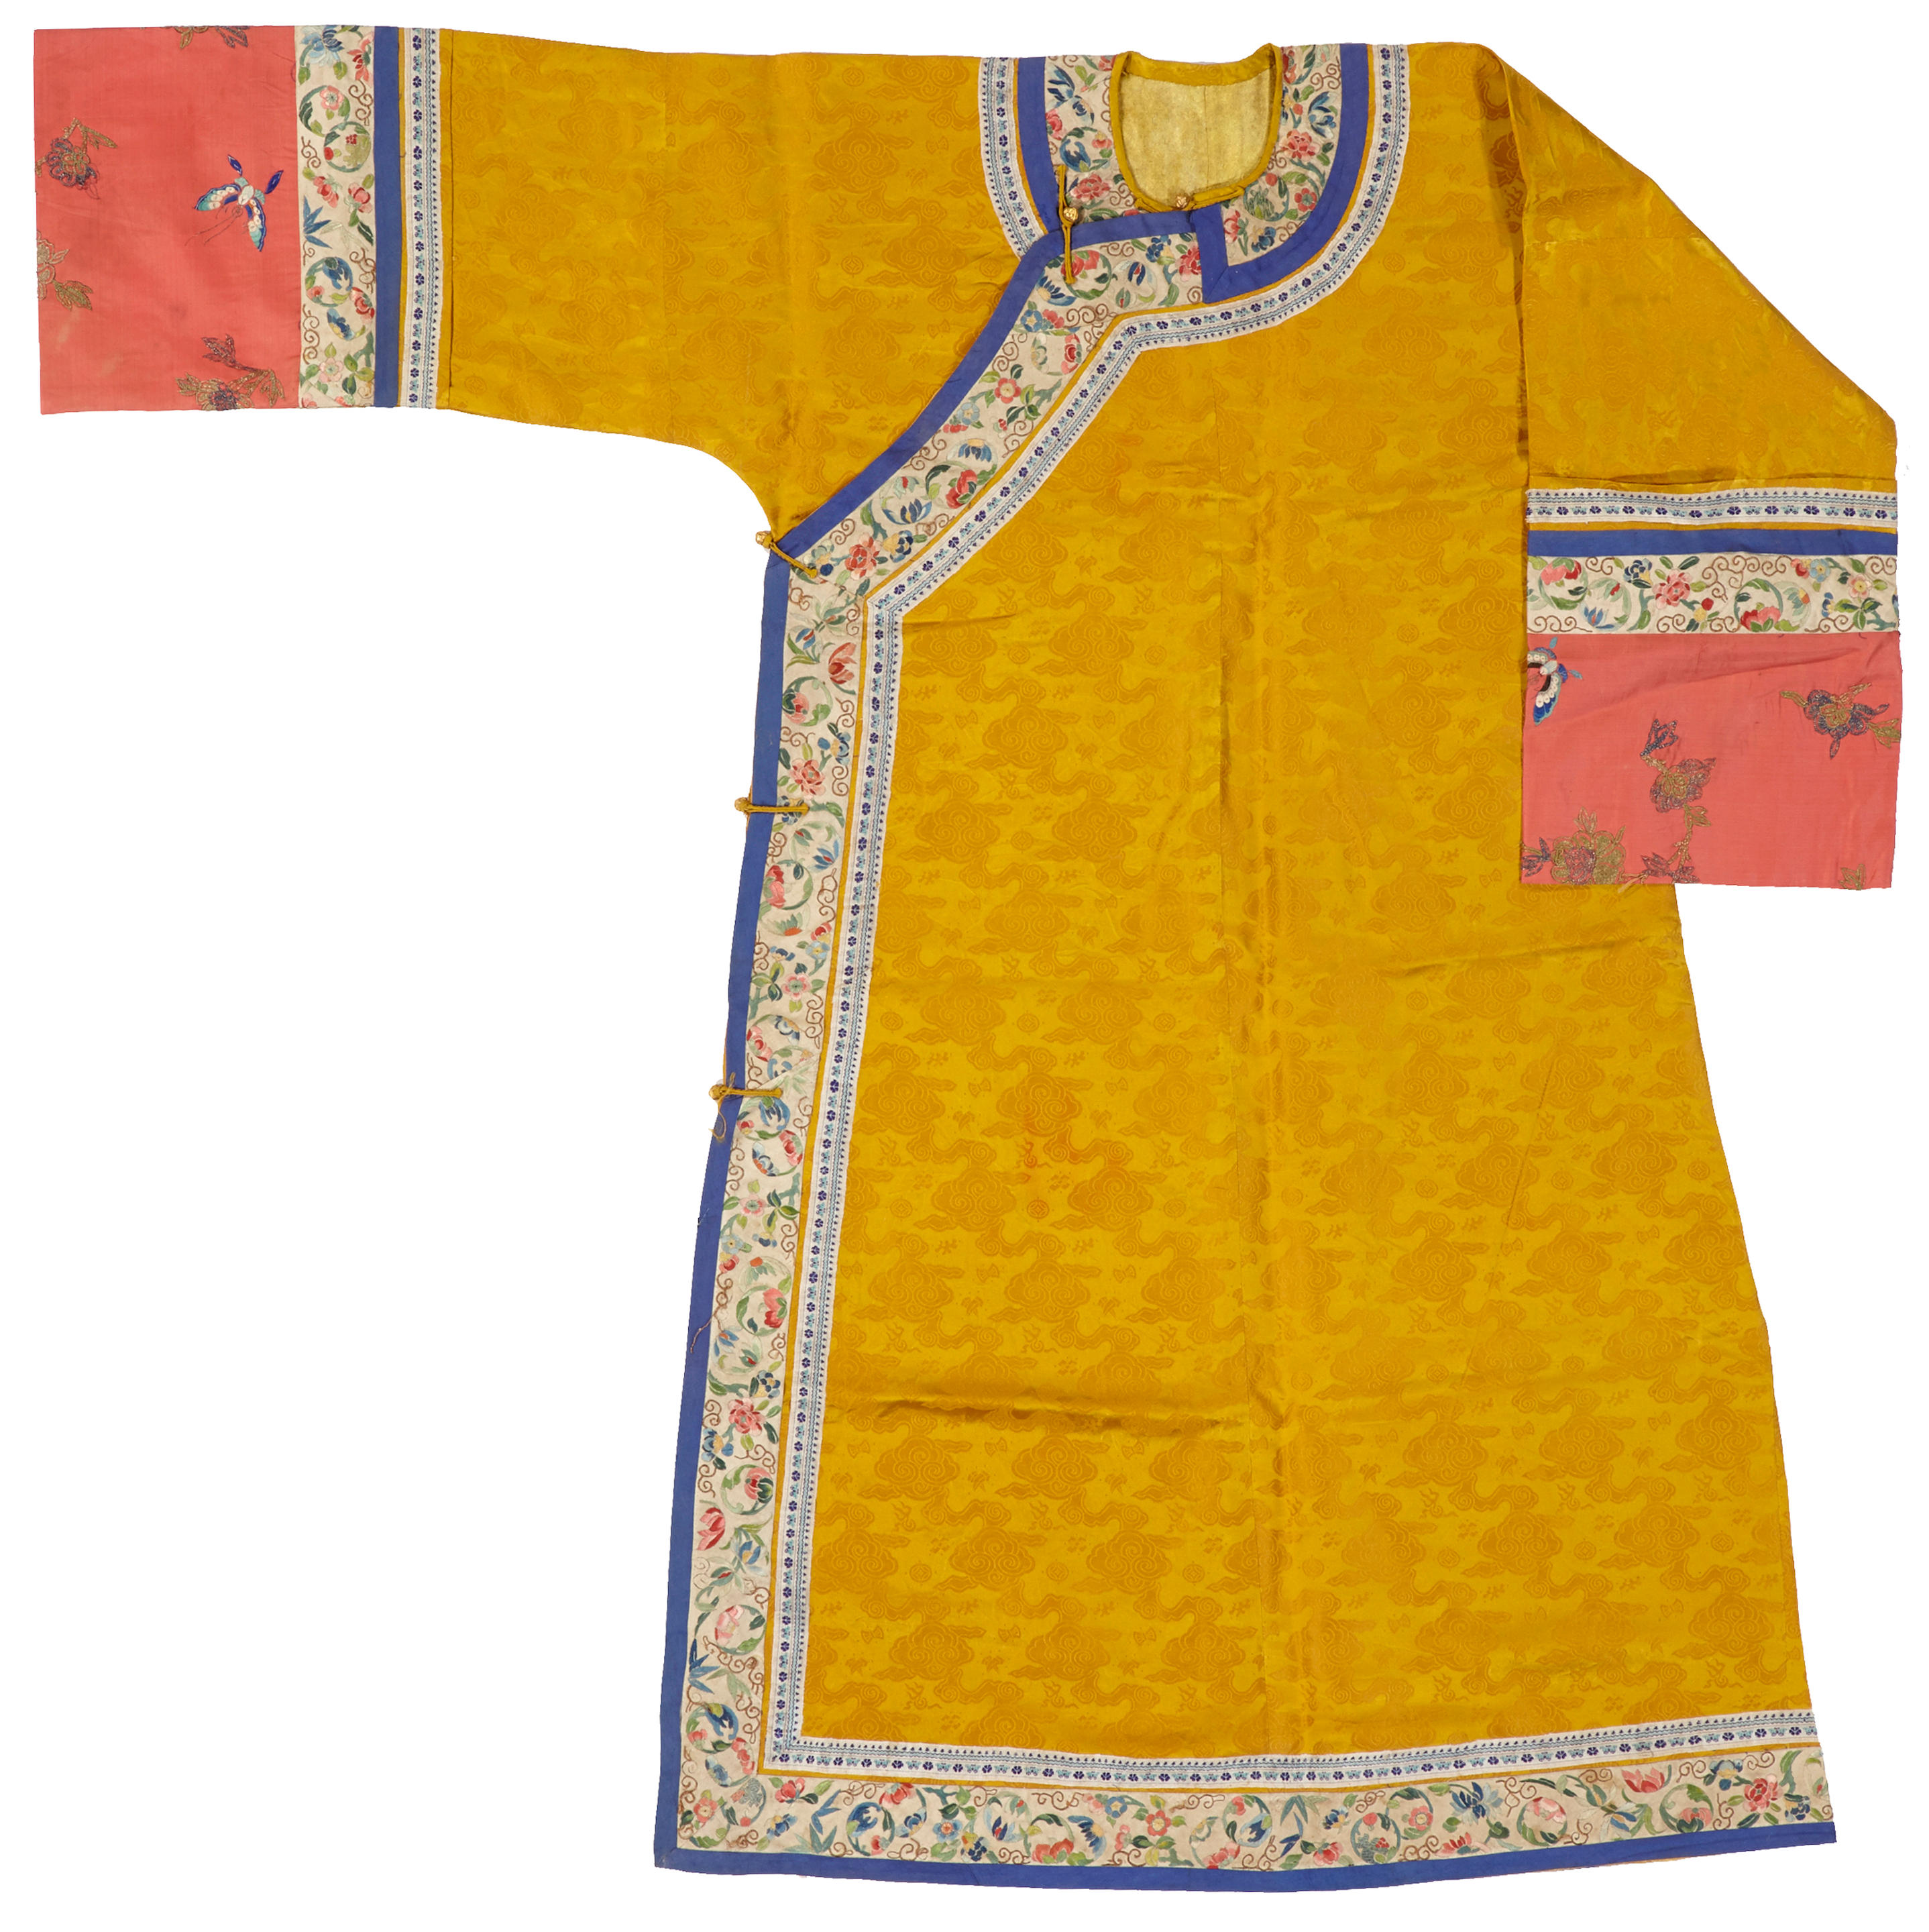 A yellow brocade woman's informal robe with embroidered bands